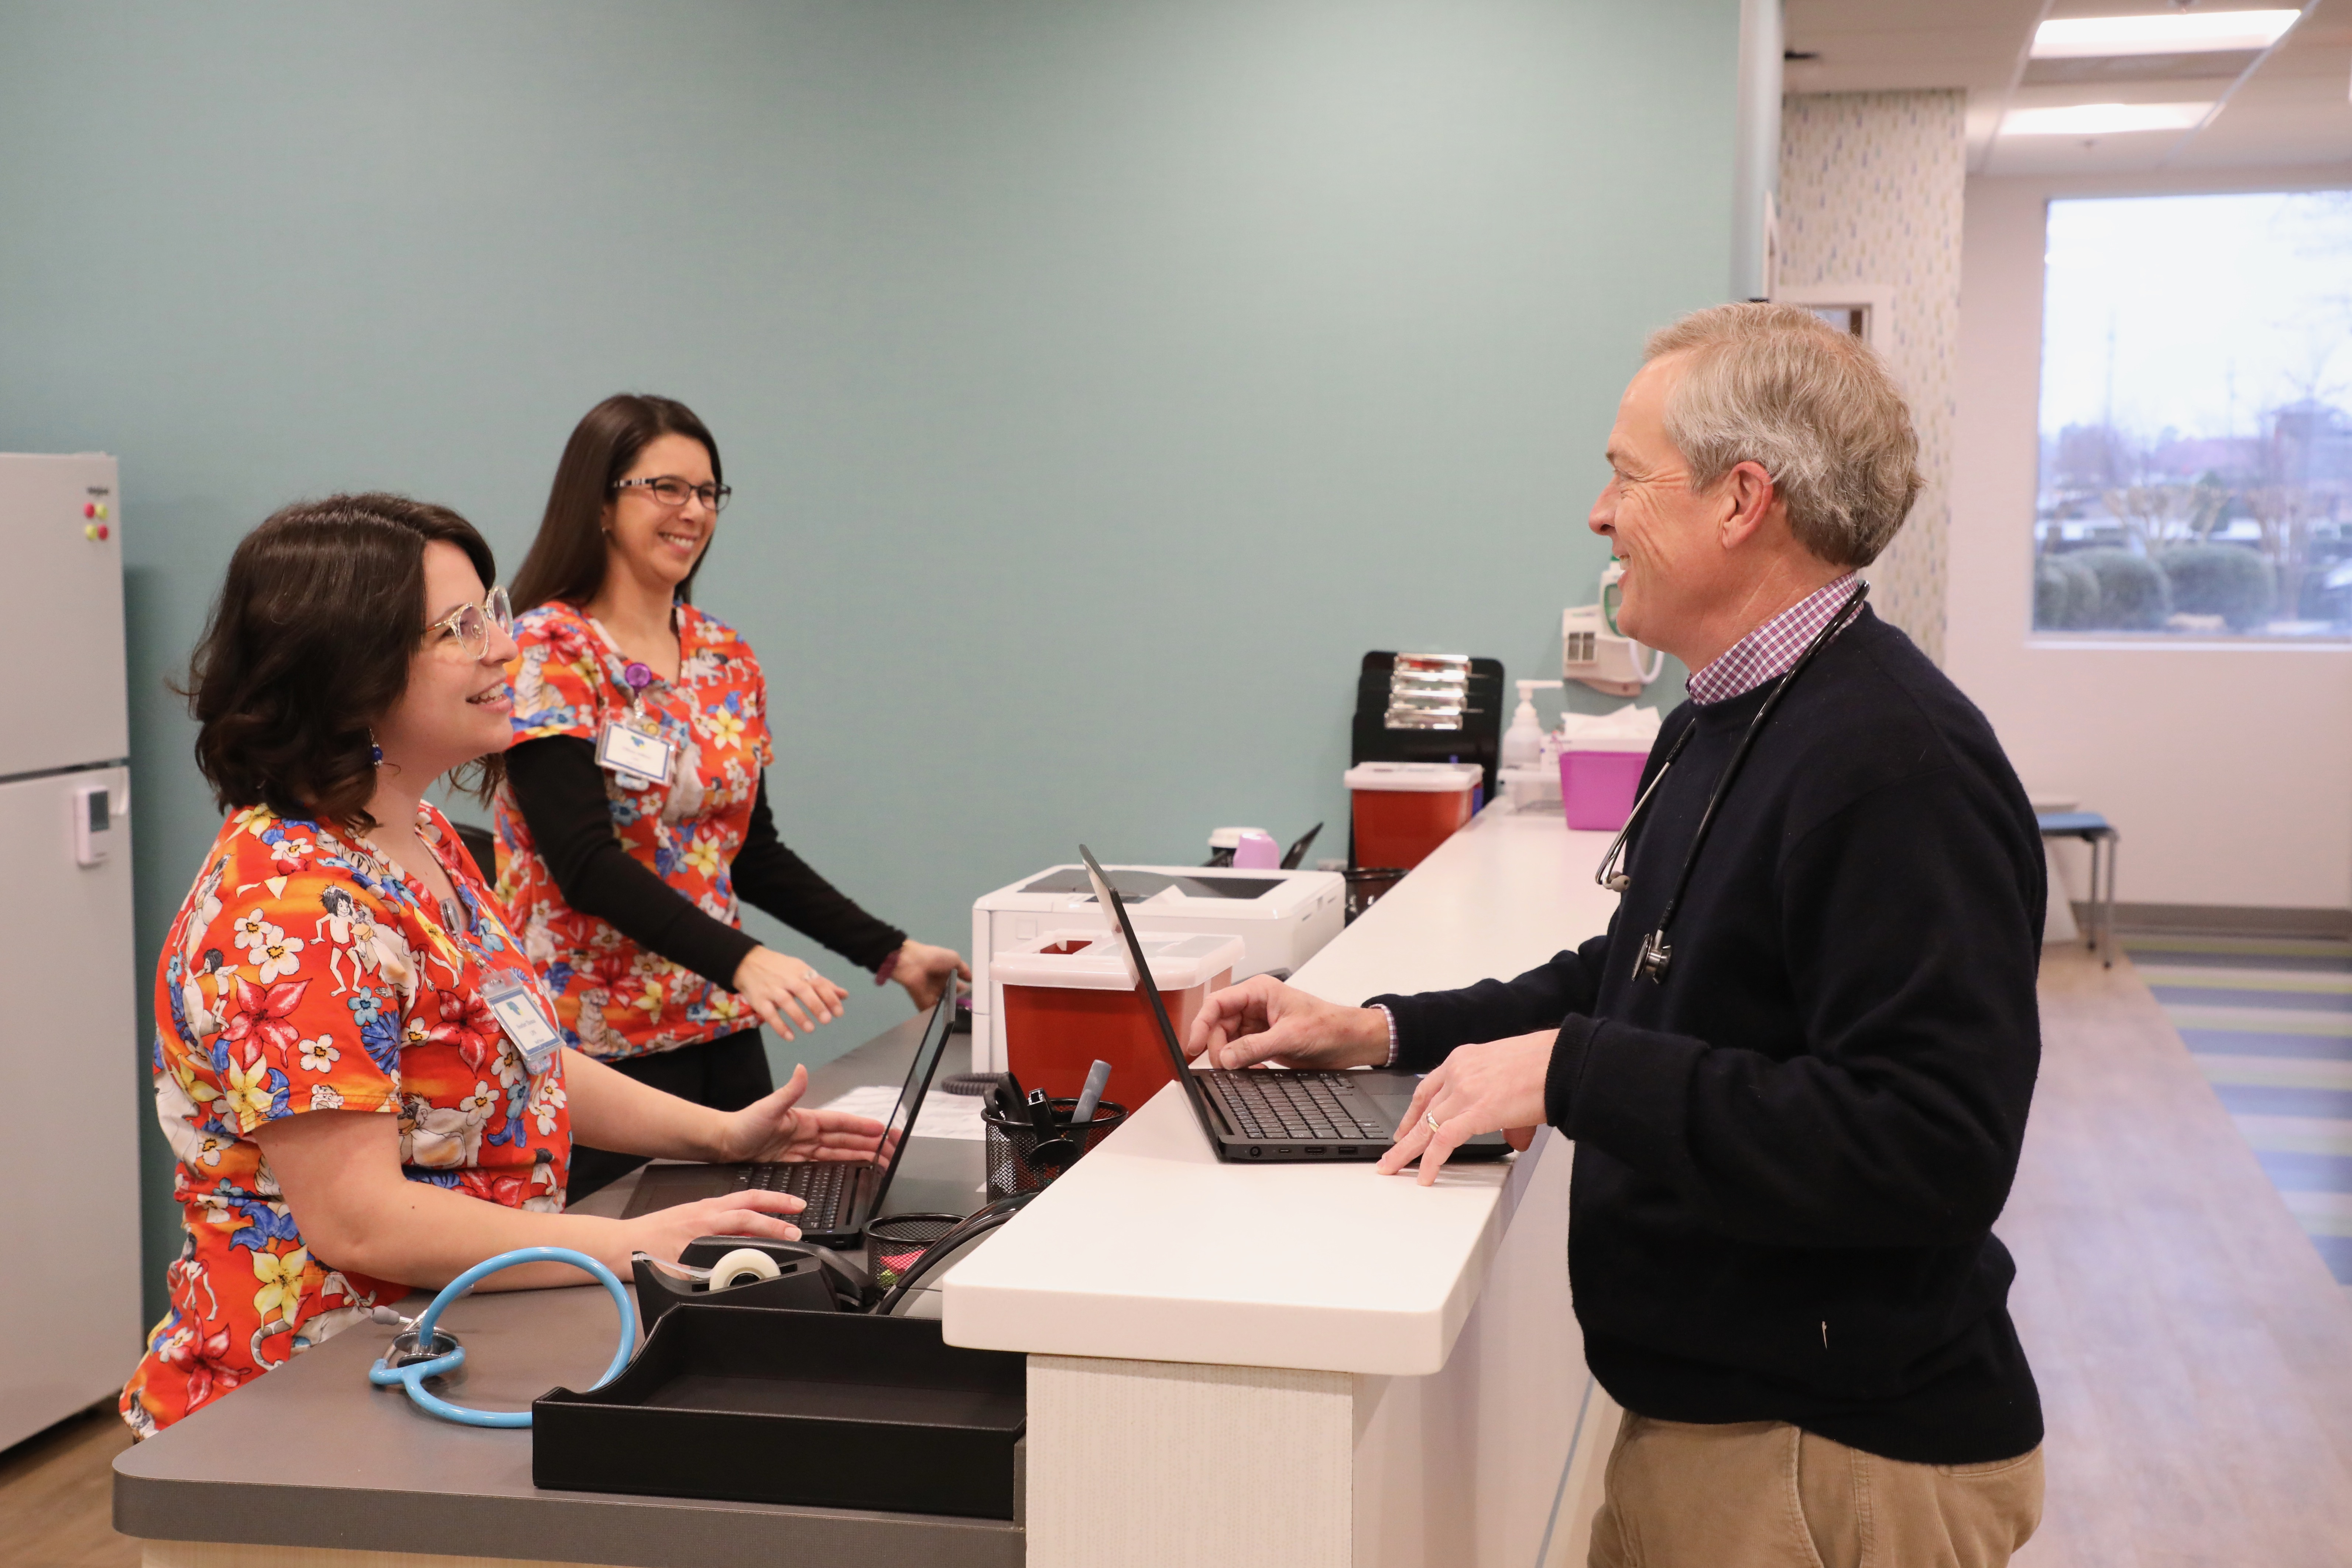 Take A Look At Our Offices - Pediatric Associates of Richmond